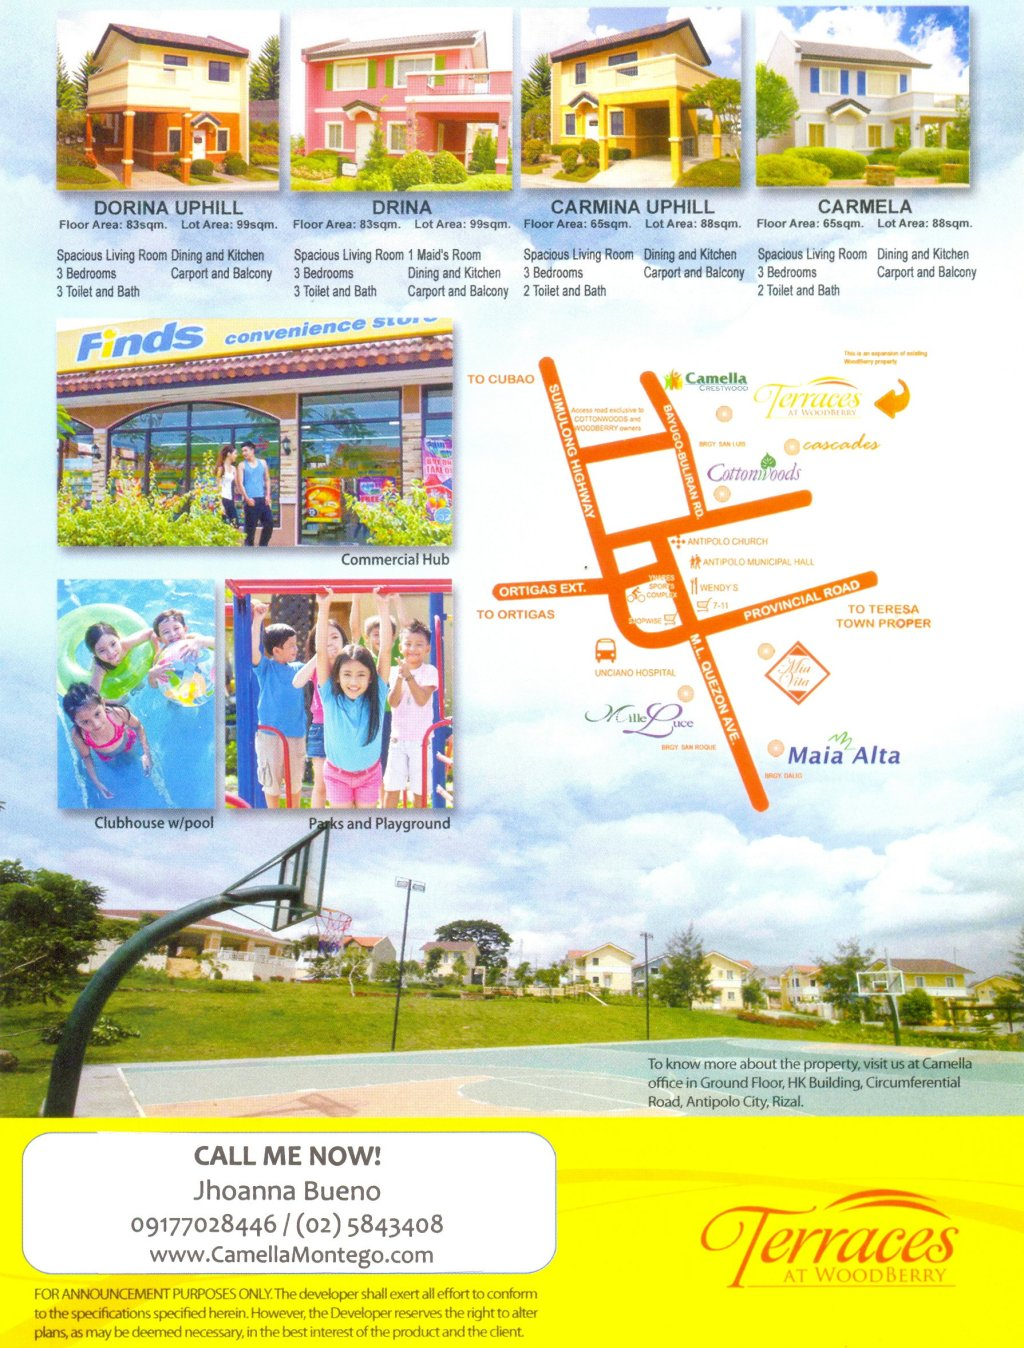 jhoanna-bueno-map-terraces-woodberry-antipolo